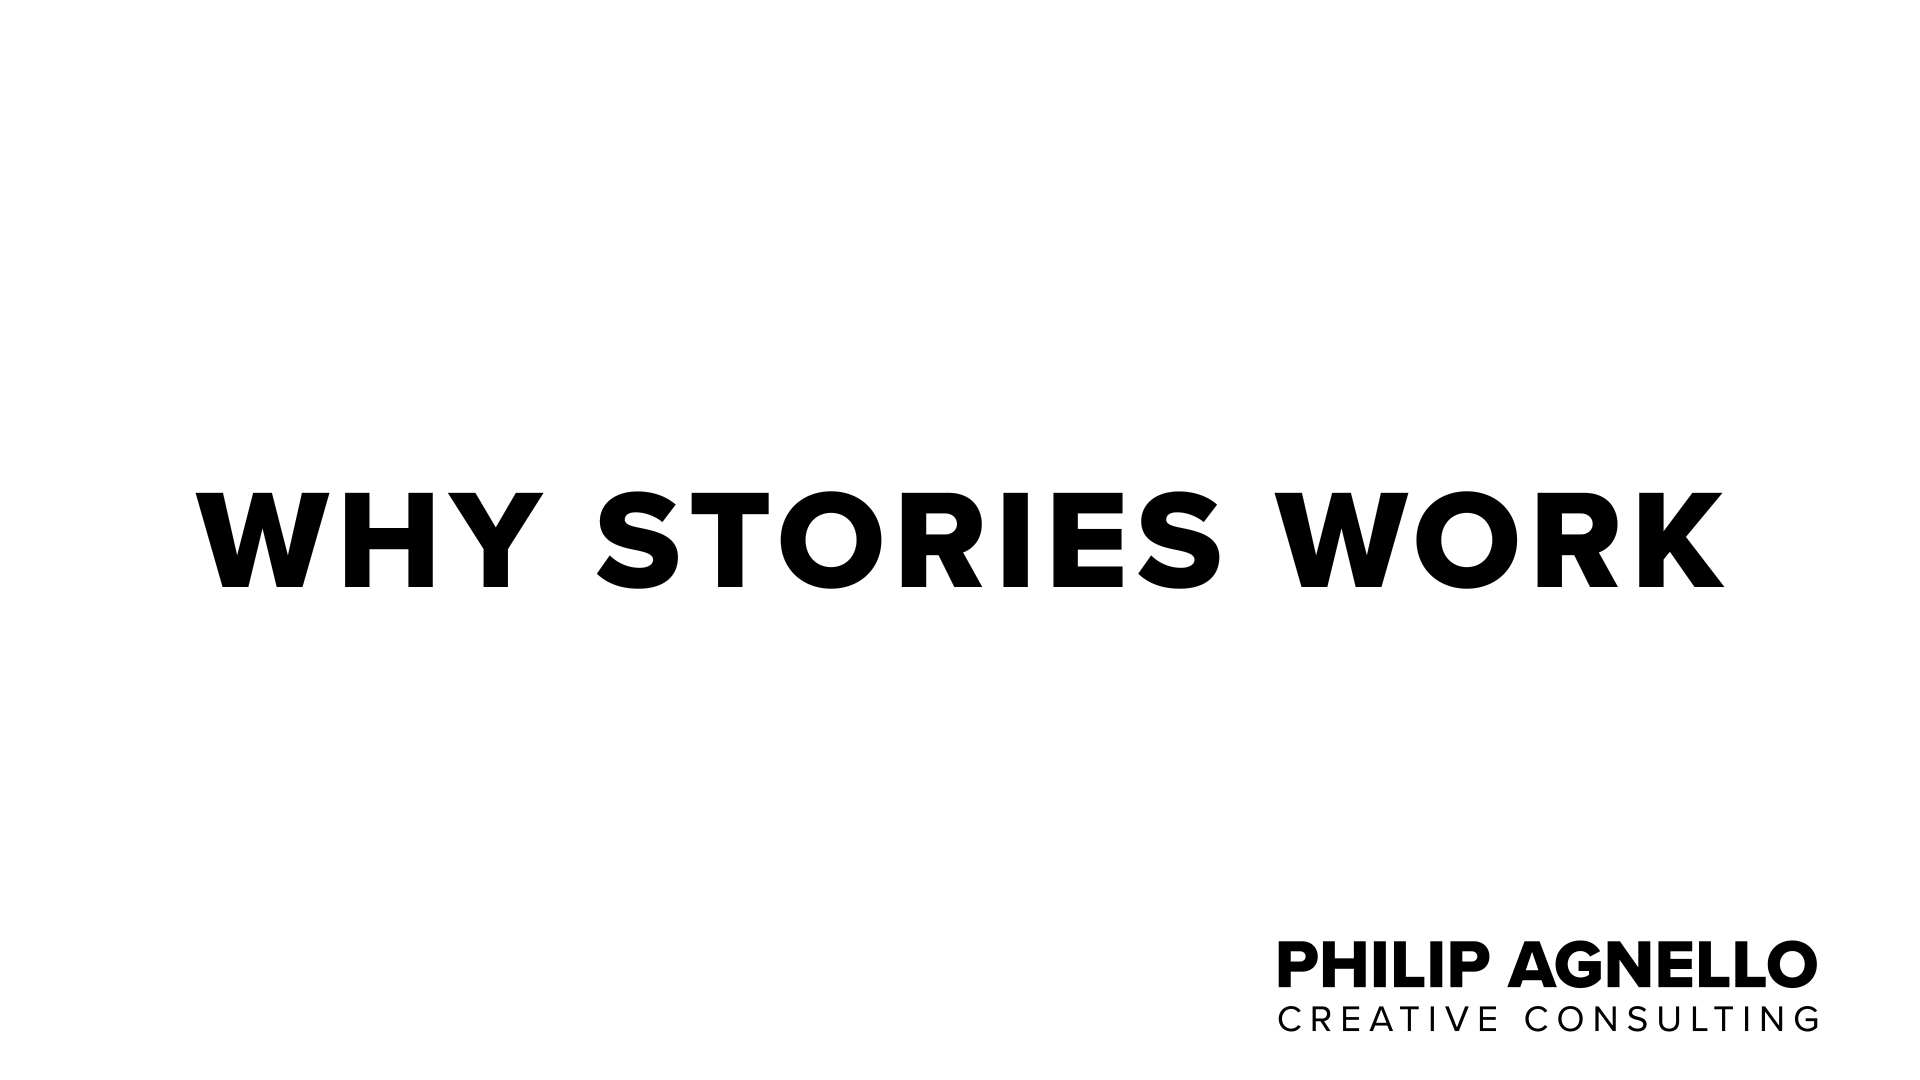 Title: Why Stories Work